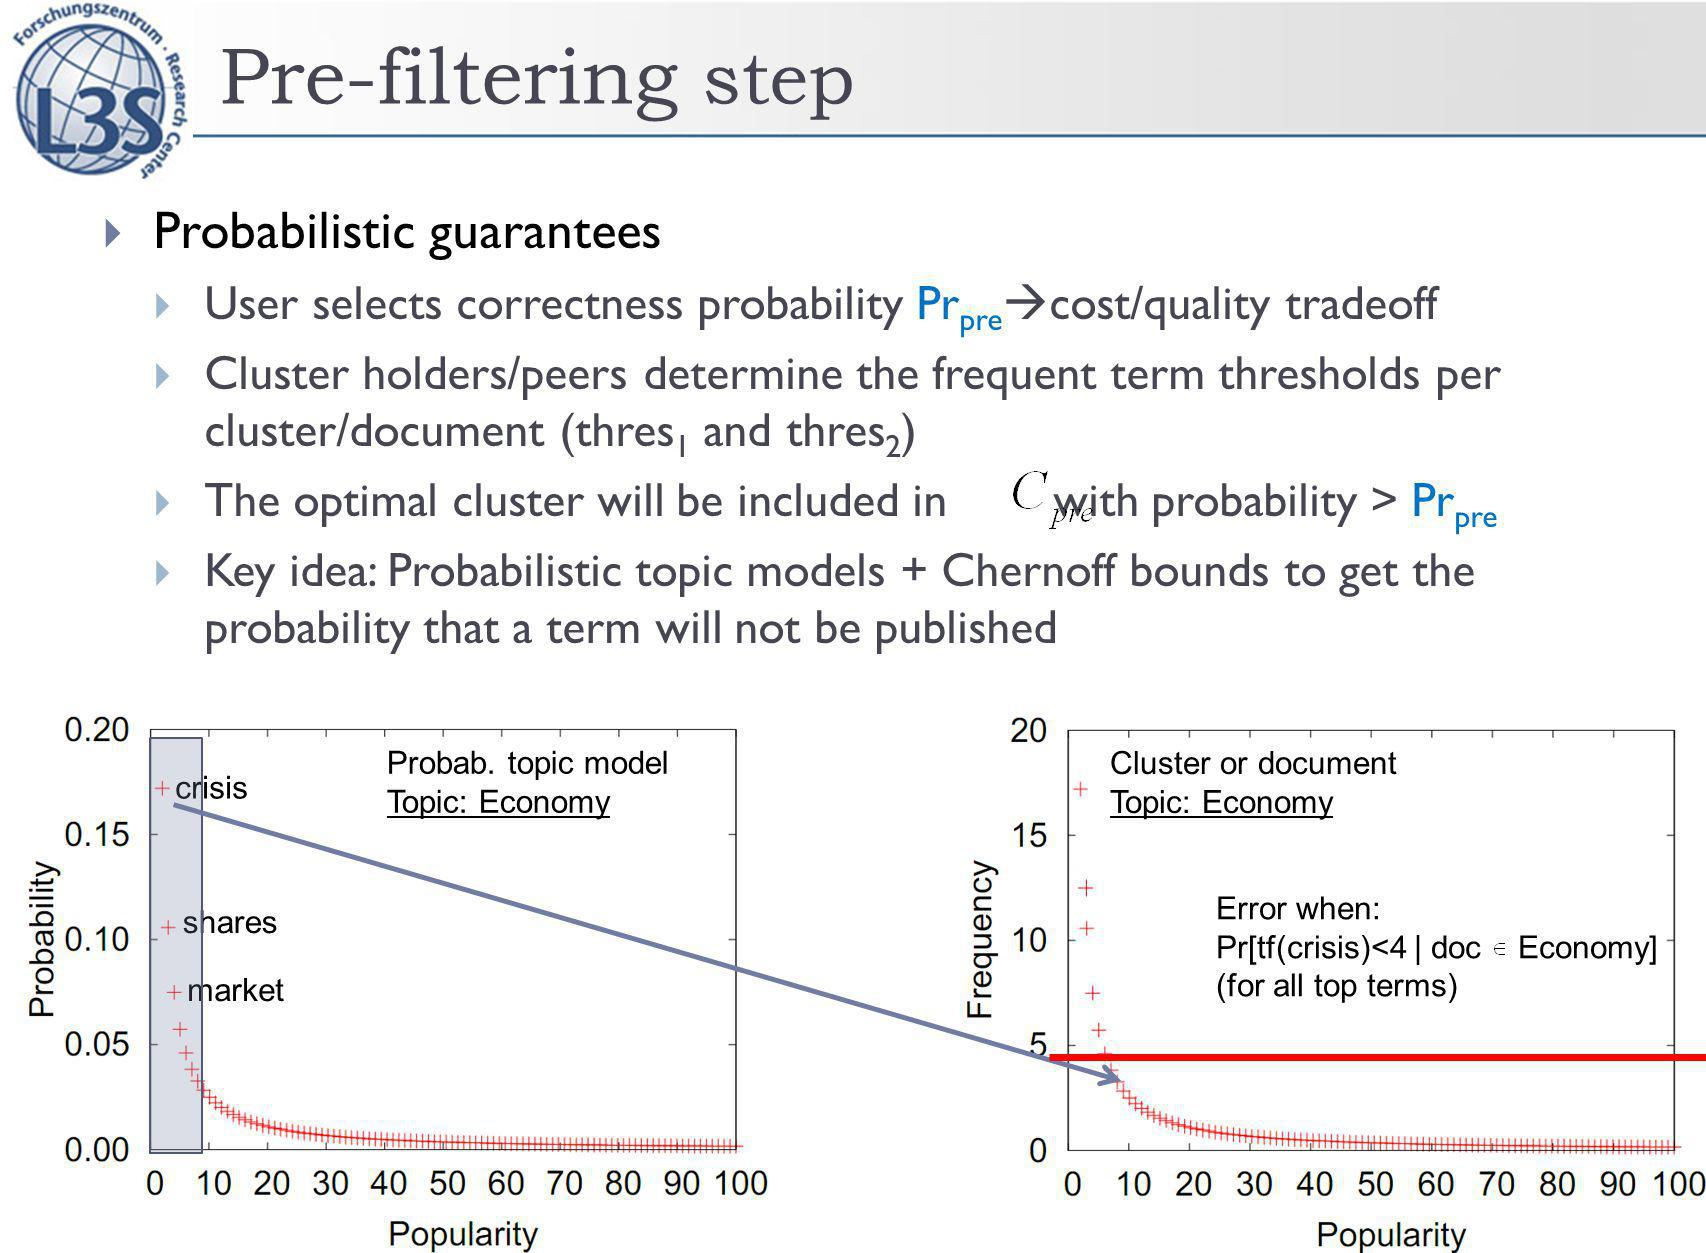 Approximate Algorithms for Efficient Indexing, Clustering, and Classification in P2P networks36 Pre-filtering step Probabilistic guarantees User selects correctness probability Pr pre cost/quality tradeoff Cluster holders/peers determine the frequent term thresholds per cluster/document (thres 1 and thres 2 ) The optimal cluster will be included in with probability > Pr pre Key idea: Probabilistic topic models + Chernoff bounds to get the probability that a term will not be published crisis shares market Probab.